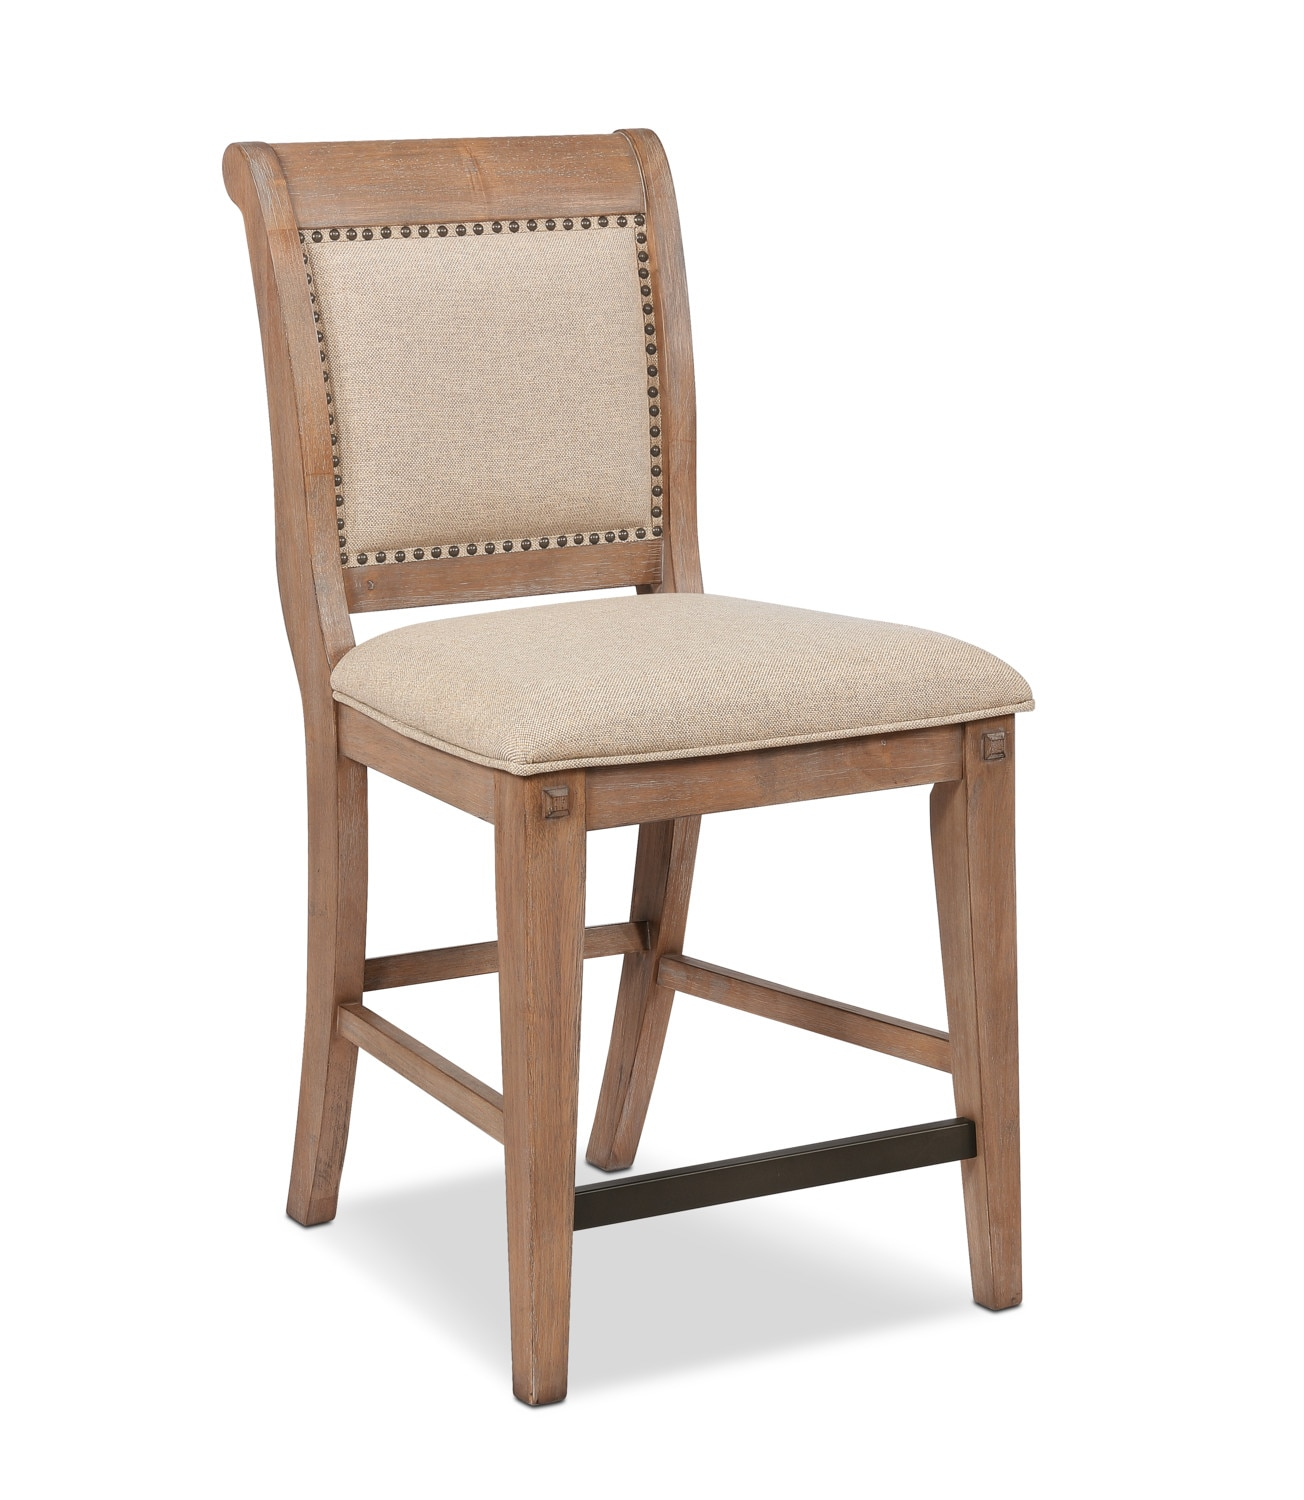 Dining Room Furniture - August Counter-Height Upholstered Stool - Latte